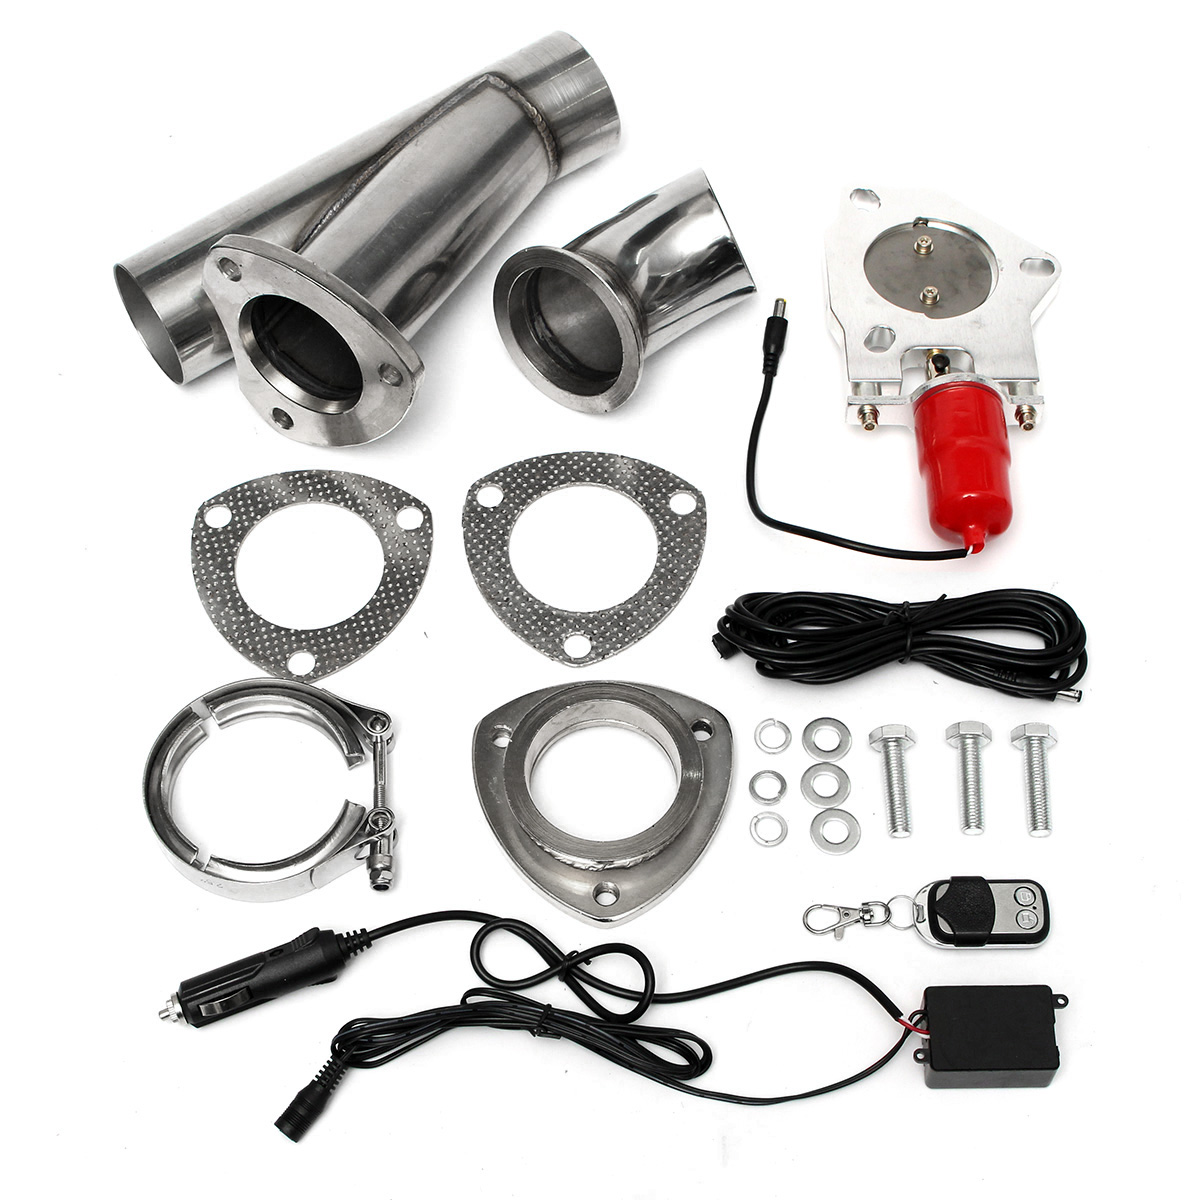 2.5 inch Electric Exhaust Valve Catback Downpipe Systems Dump Remote Cutout E-Cut recommendation systems for e commerce